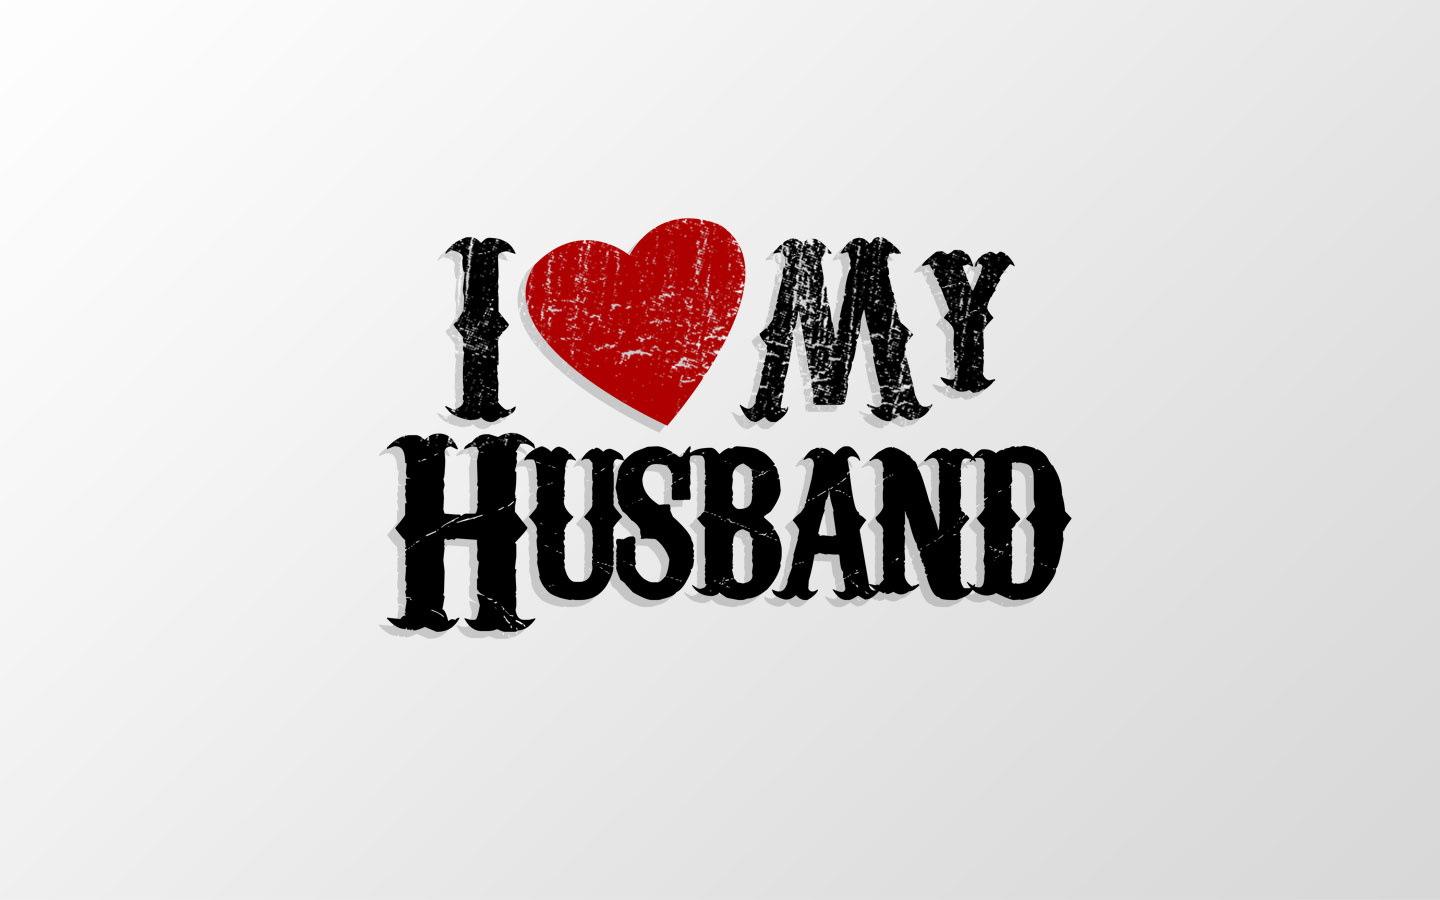 Wallpaper I Love You Husband : I Love My Husband Wallpaper - christian Wallpapers and Backgrounds